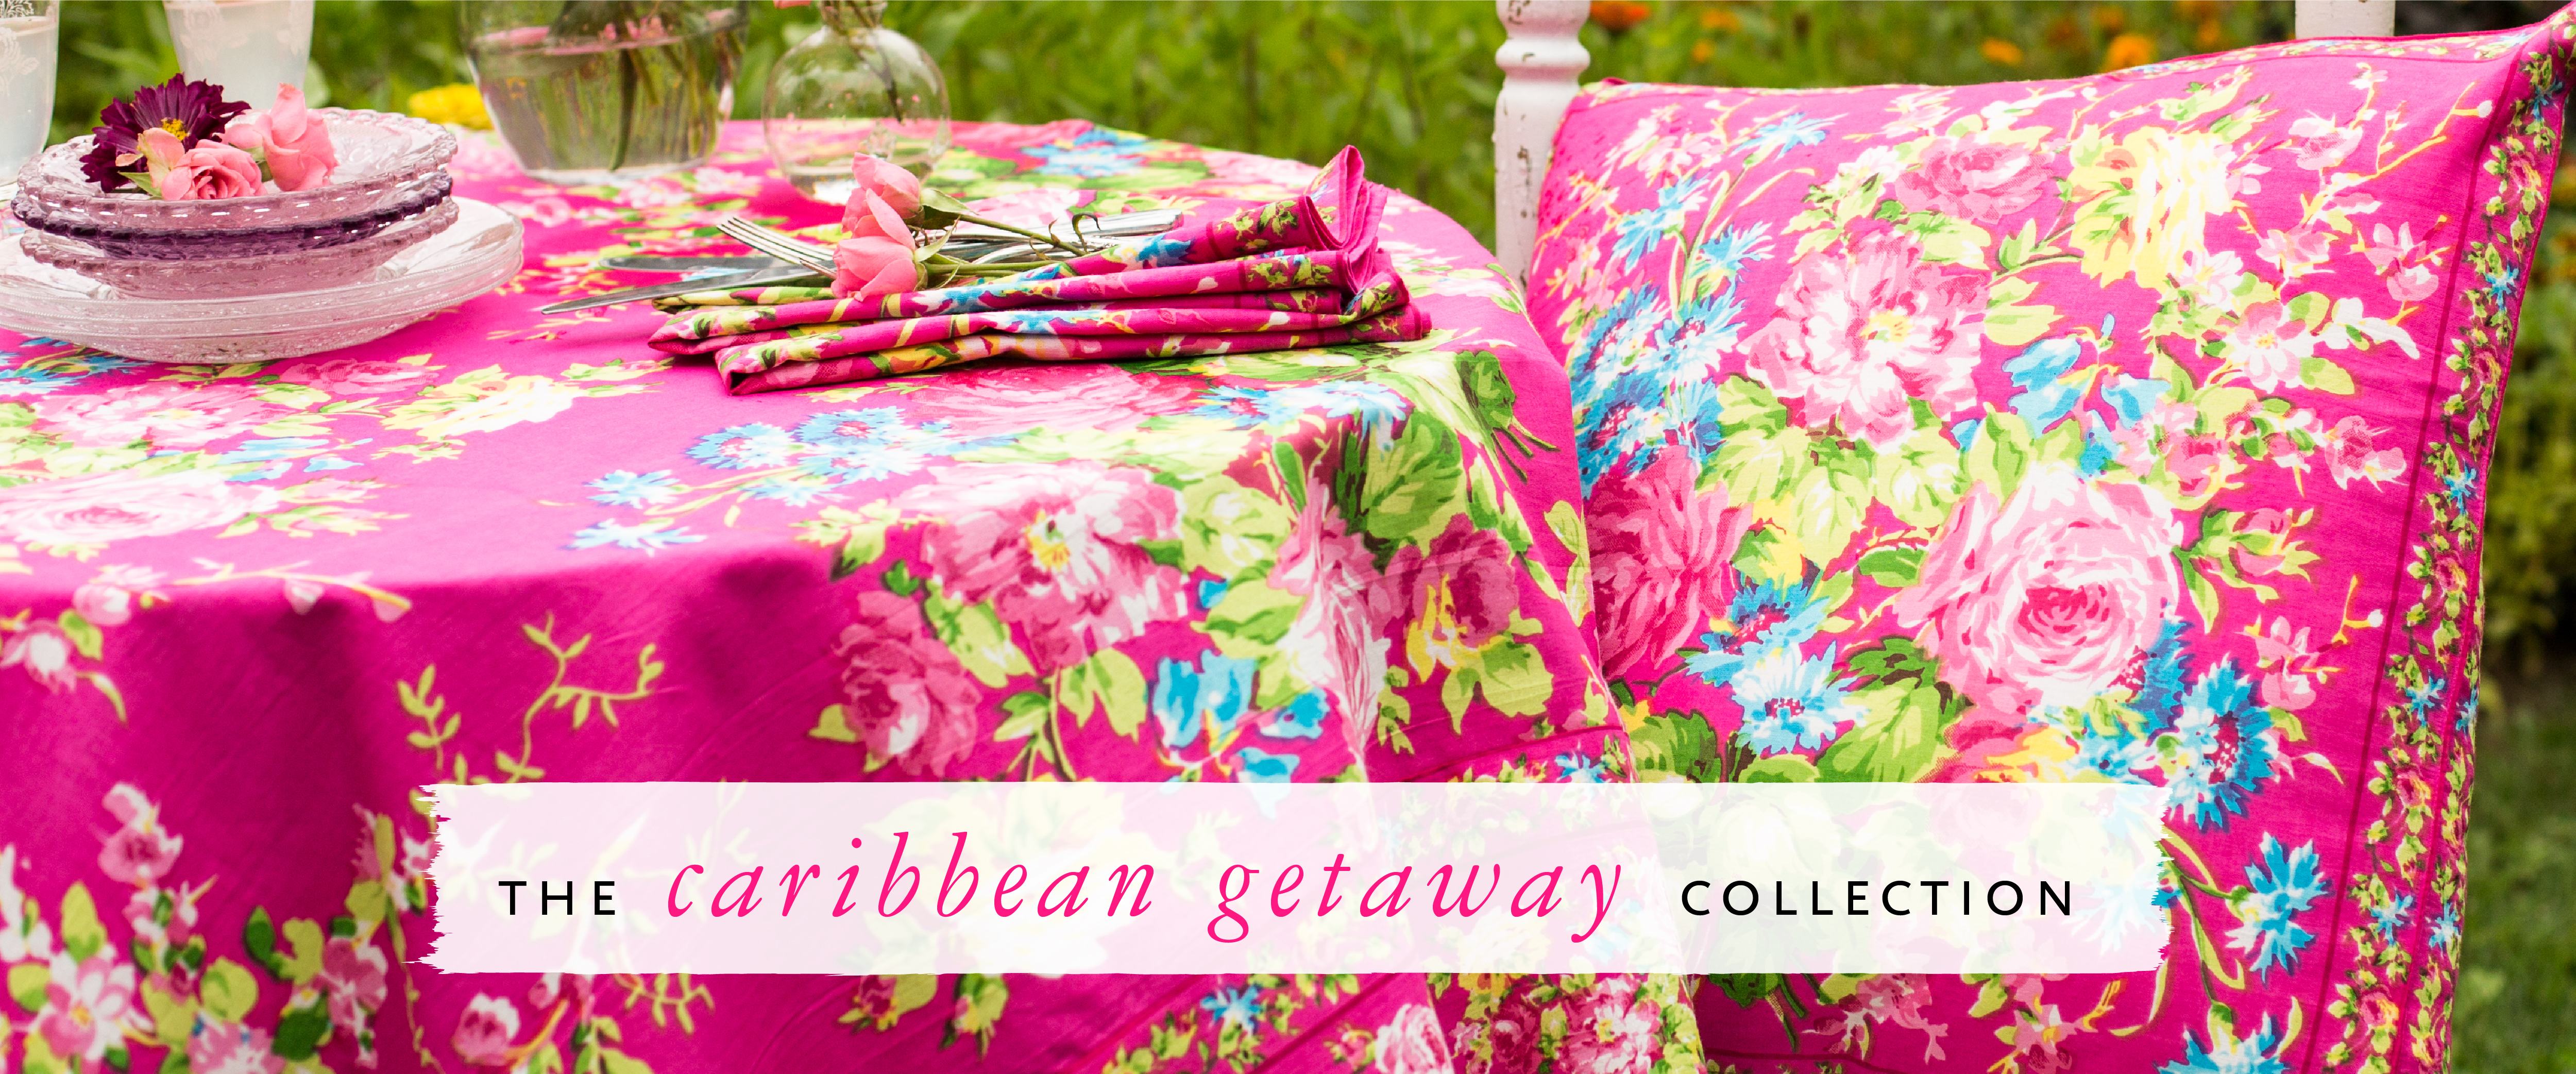 The Caribbean Getaway Collection